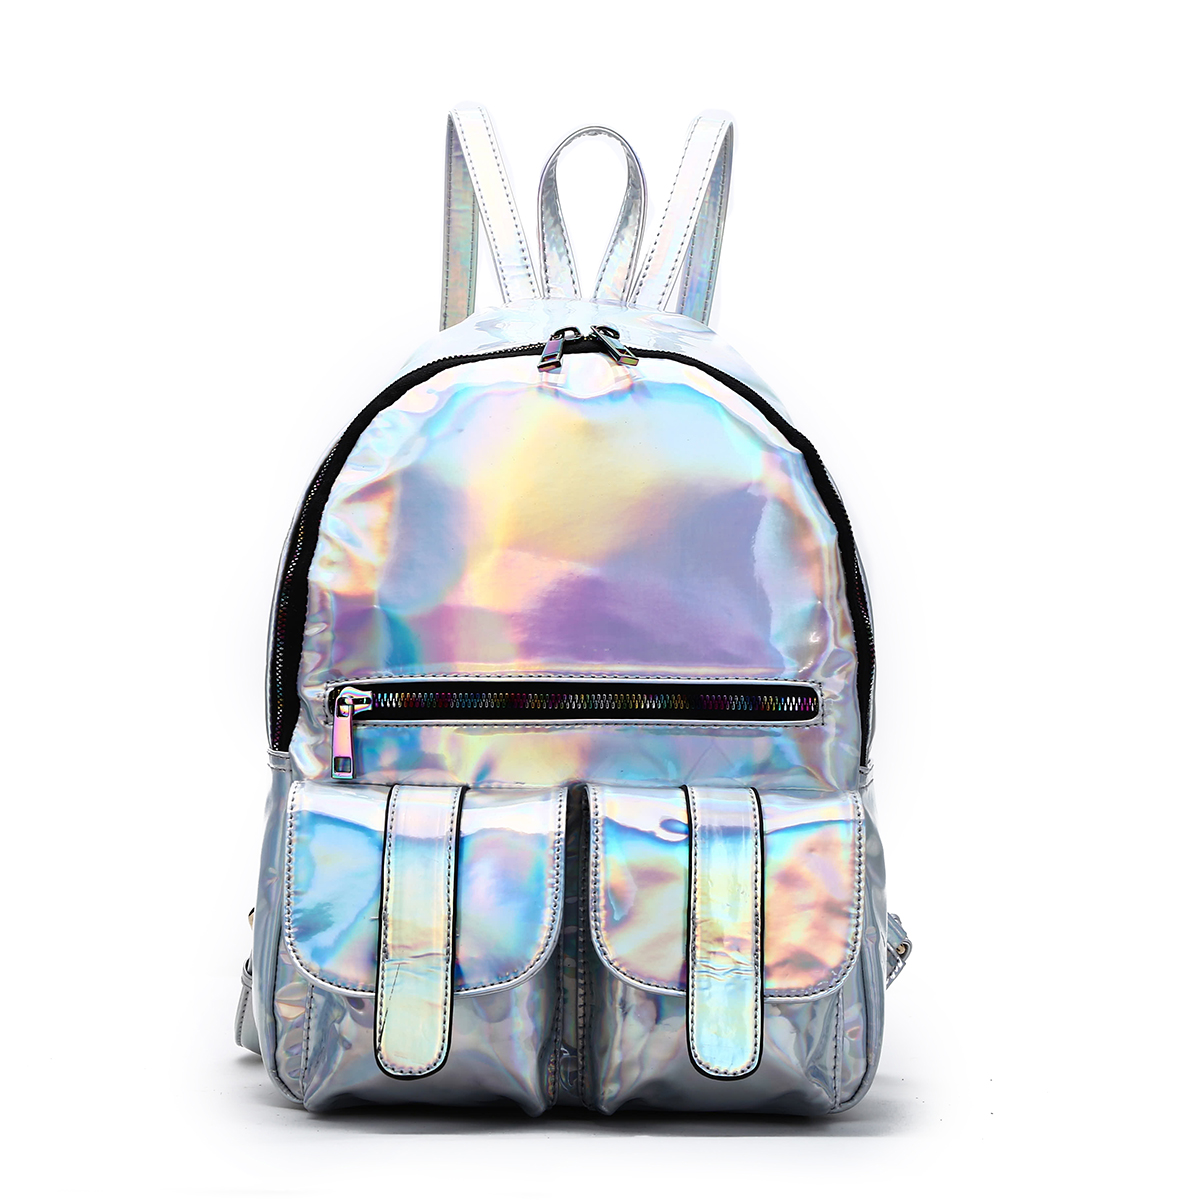 Hologram Dual Pocket Backpack with Rainbow Zipper Silver